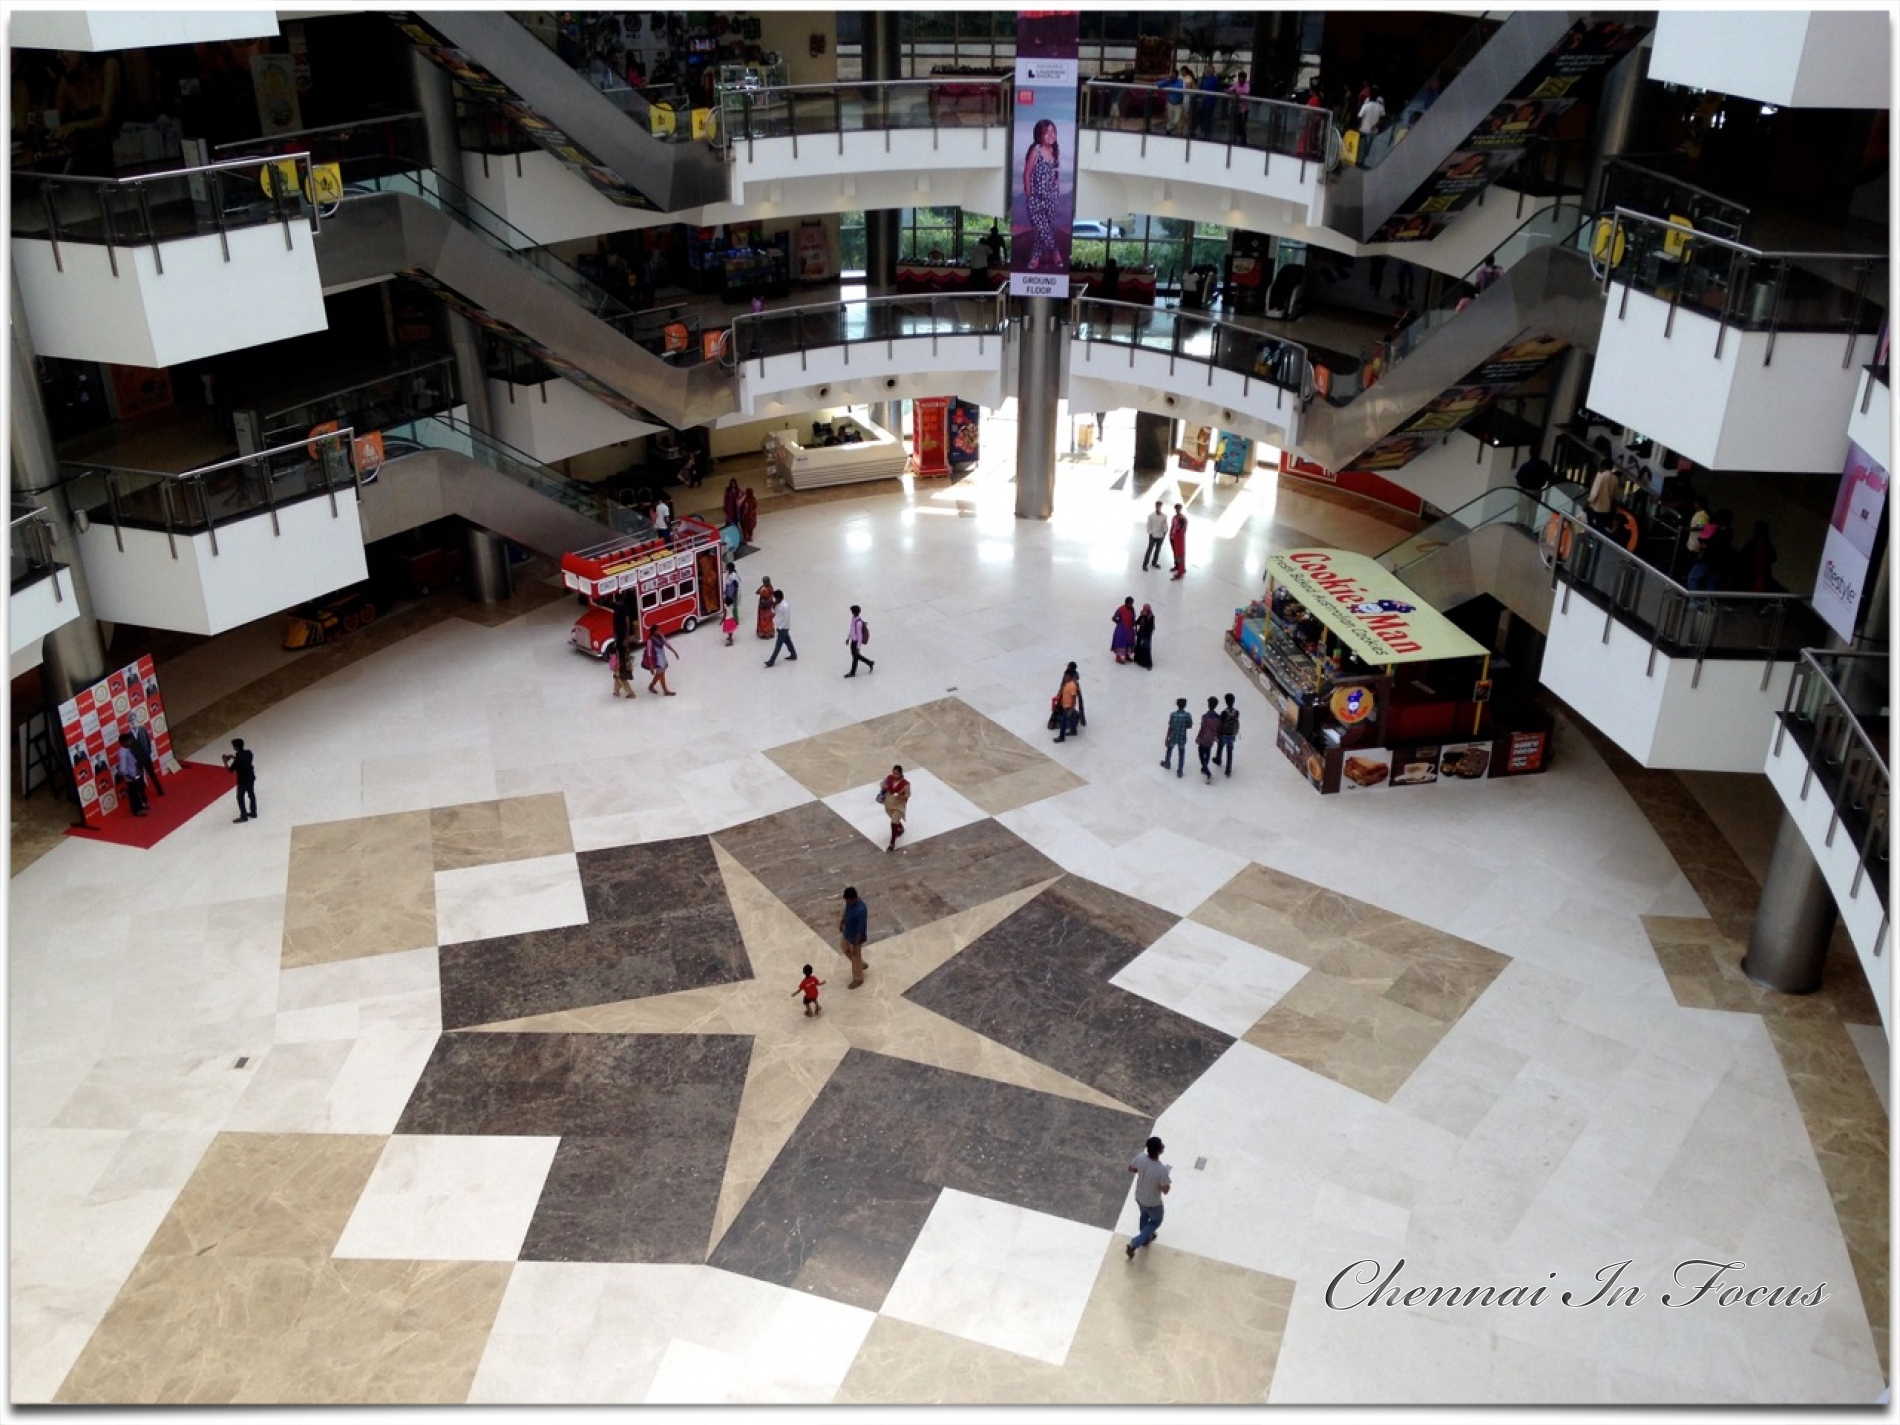 Express Avenue - Chennai In Focus